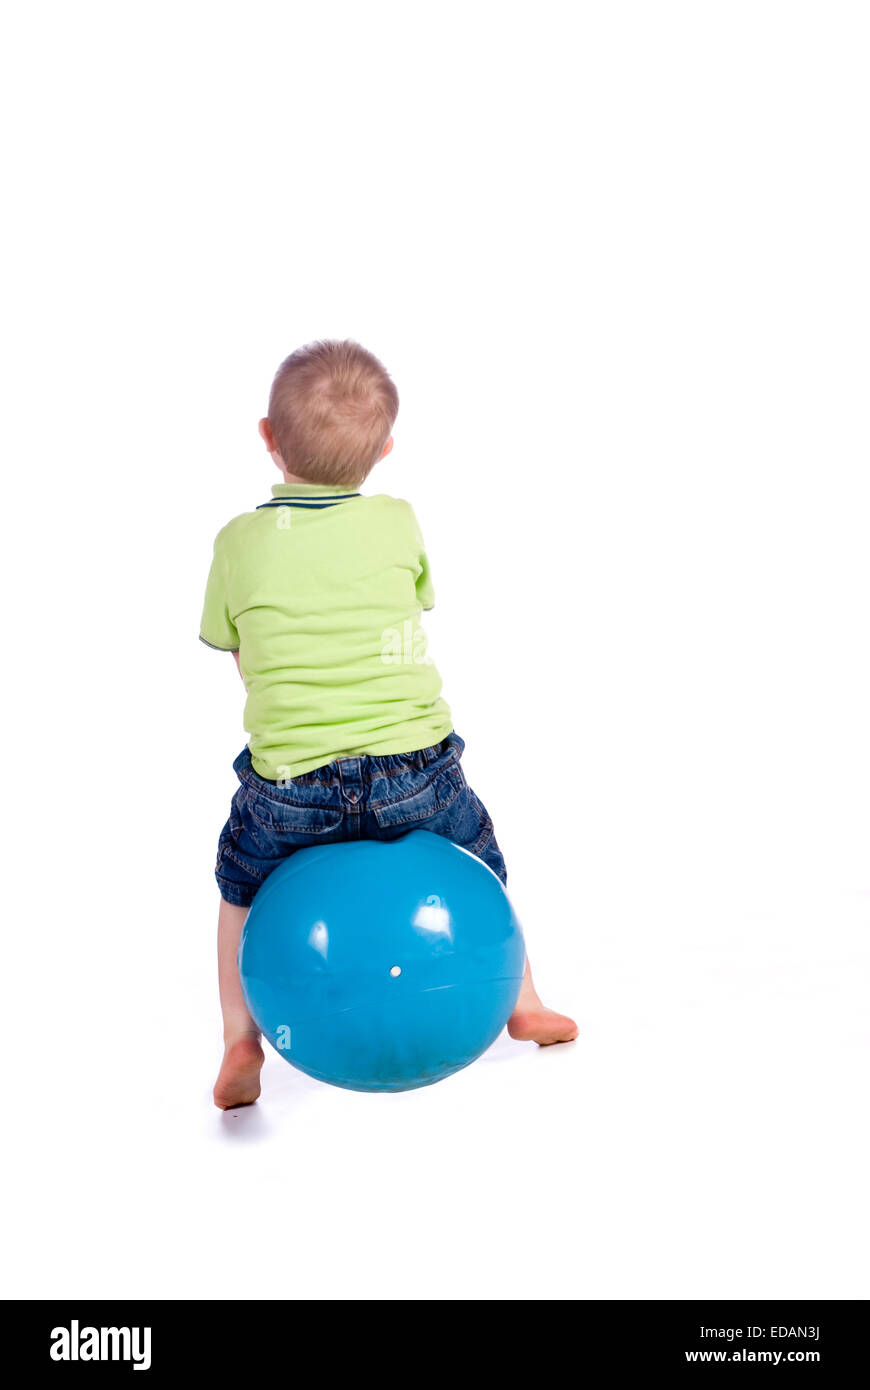 Boy playing in studio with space hopper toy - Stock Image